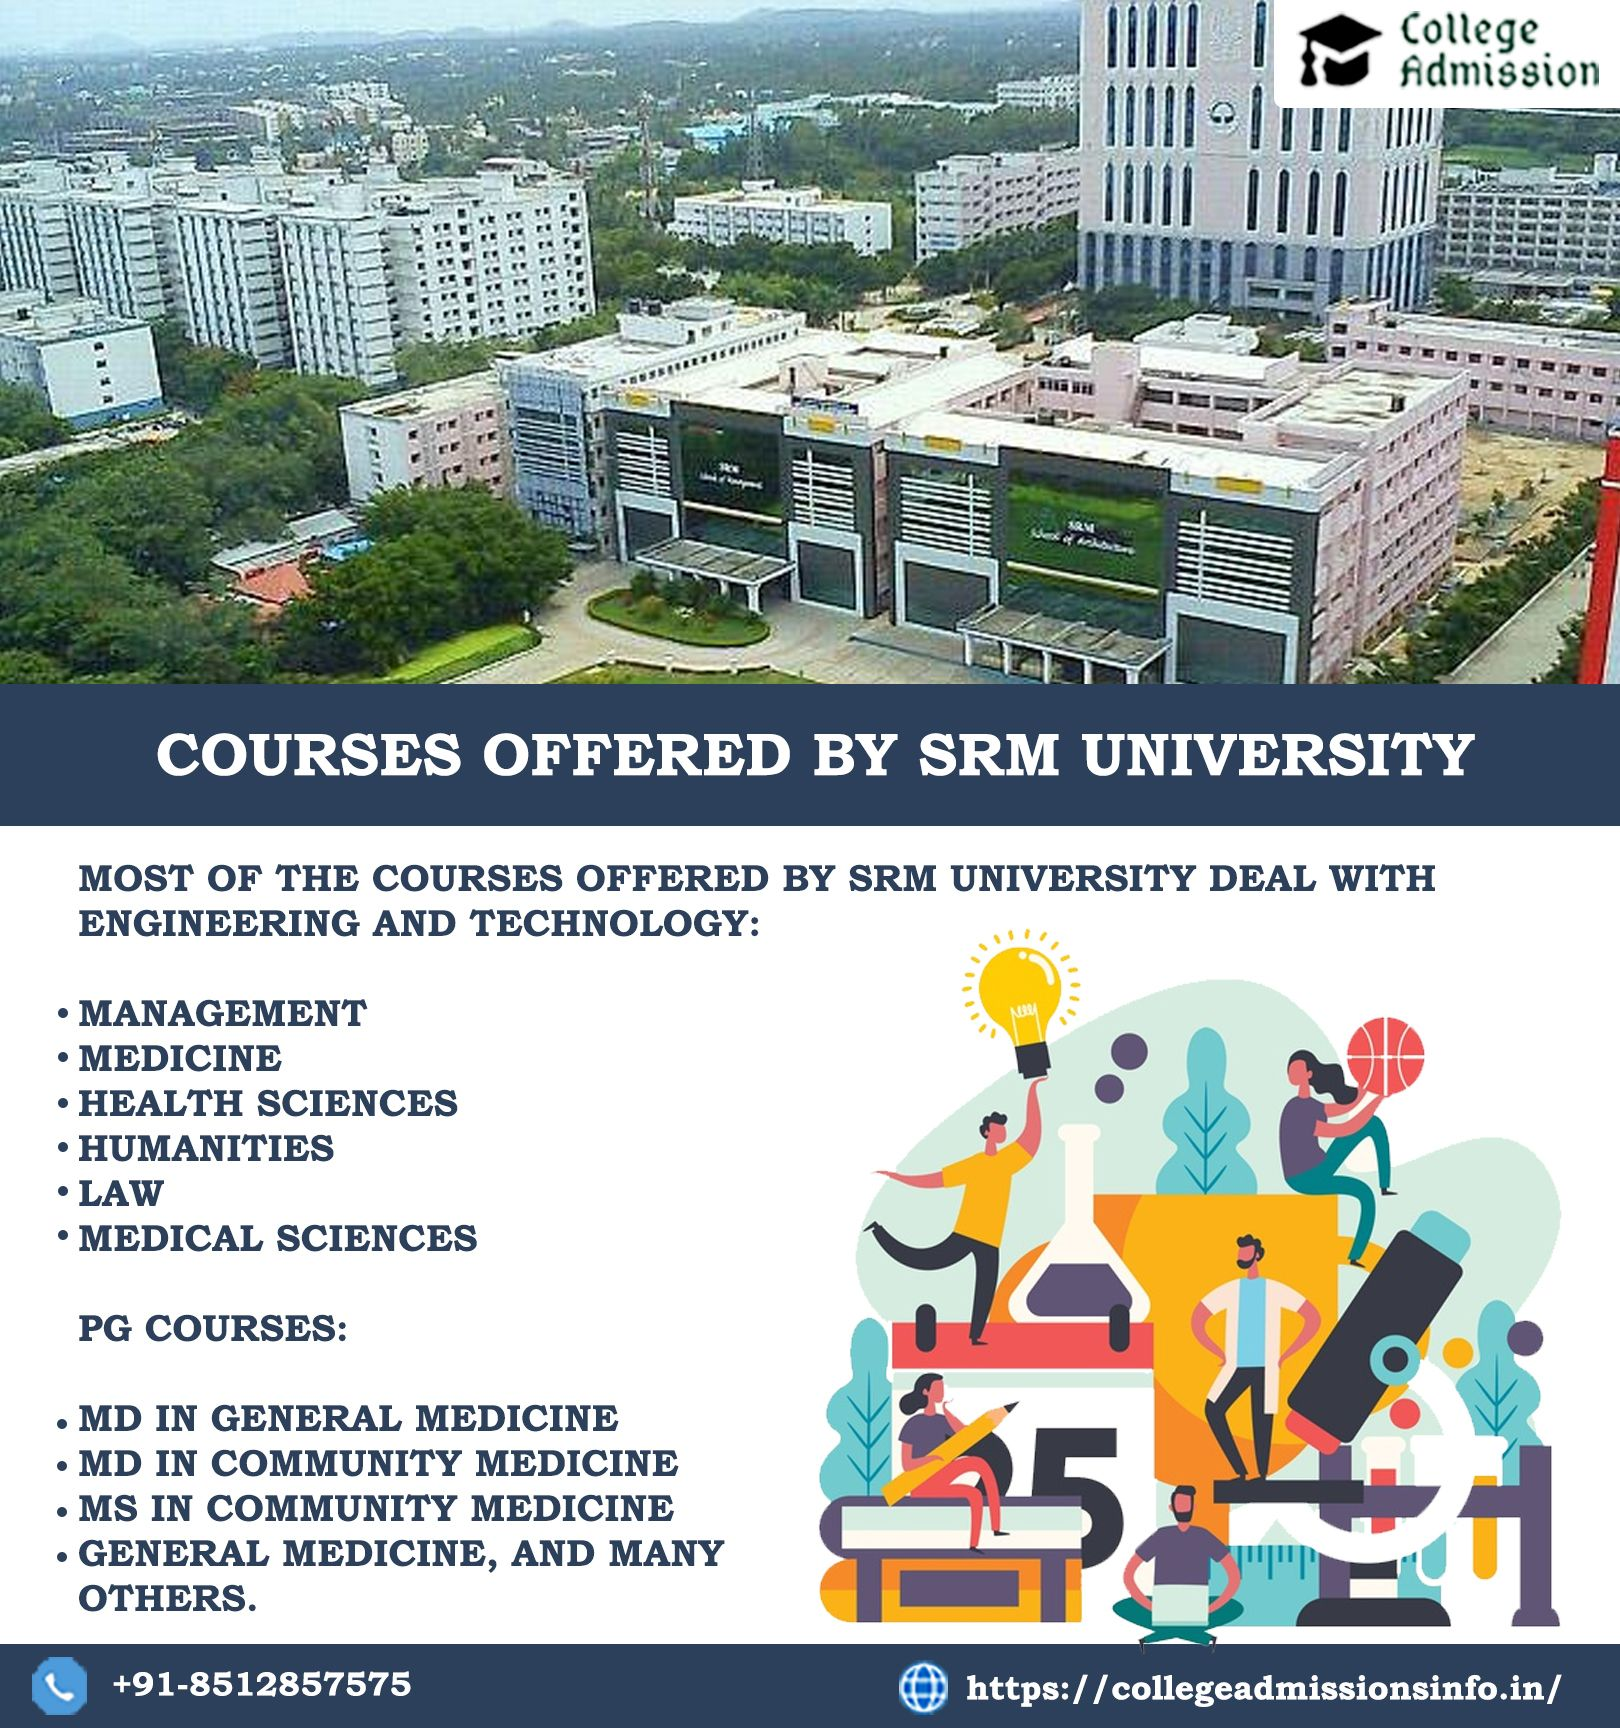 Courses Offered By Srm University